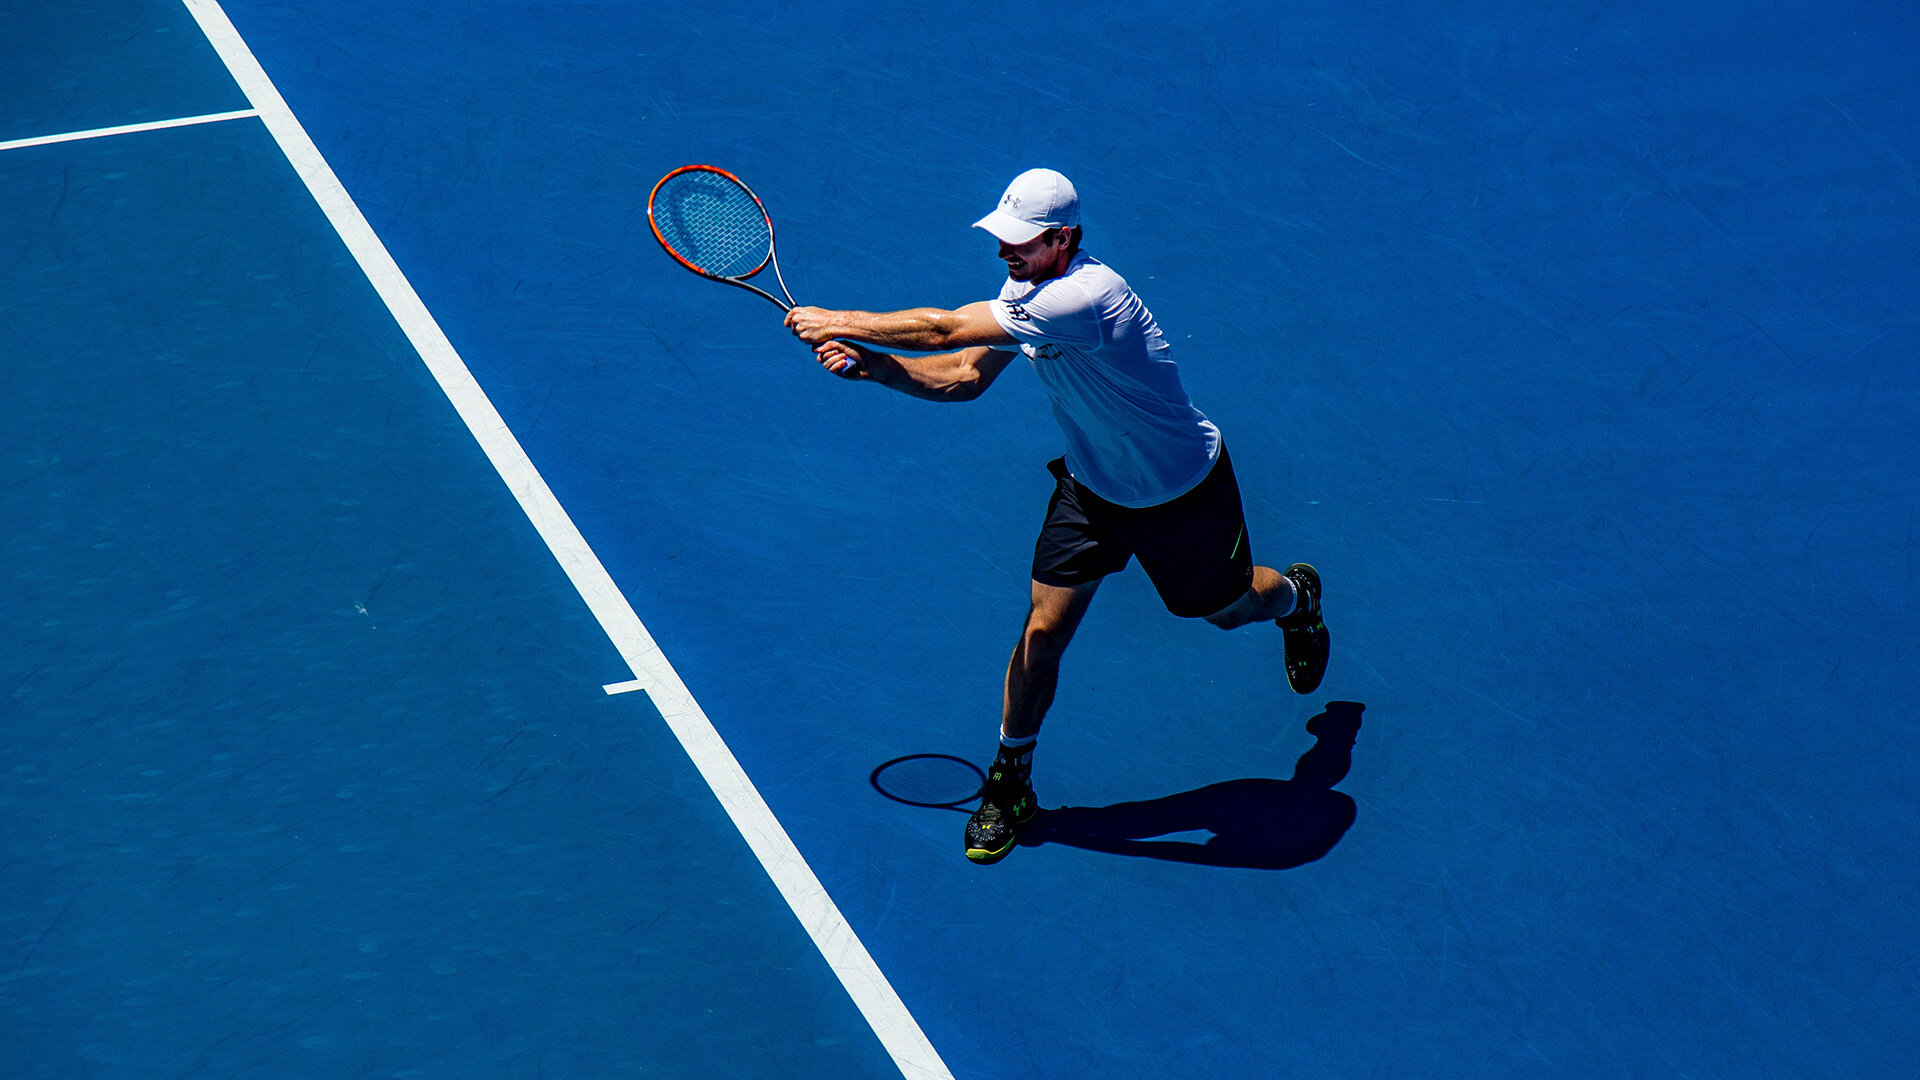 Tennis elbow - not just for athletes